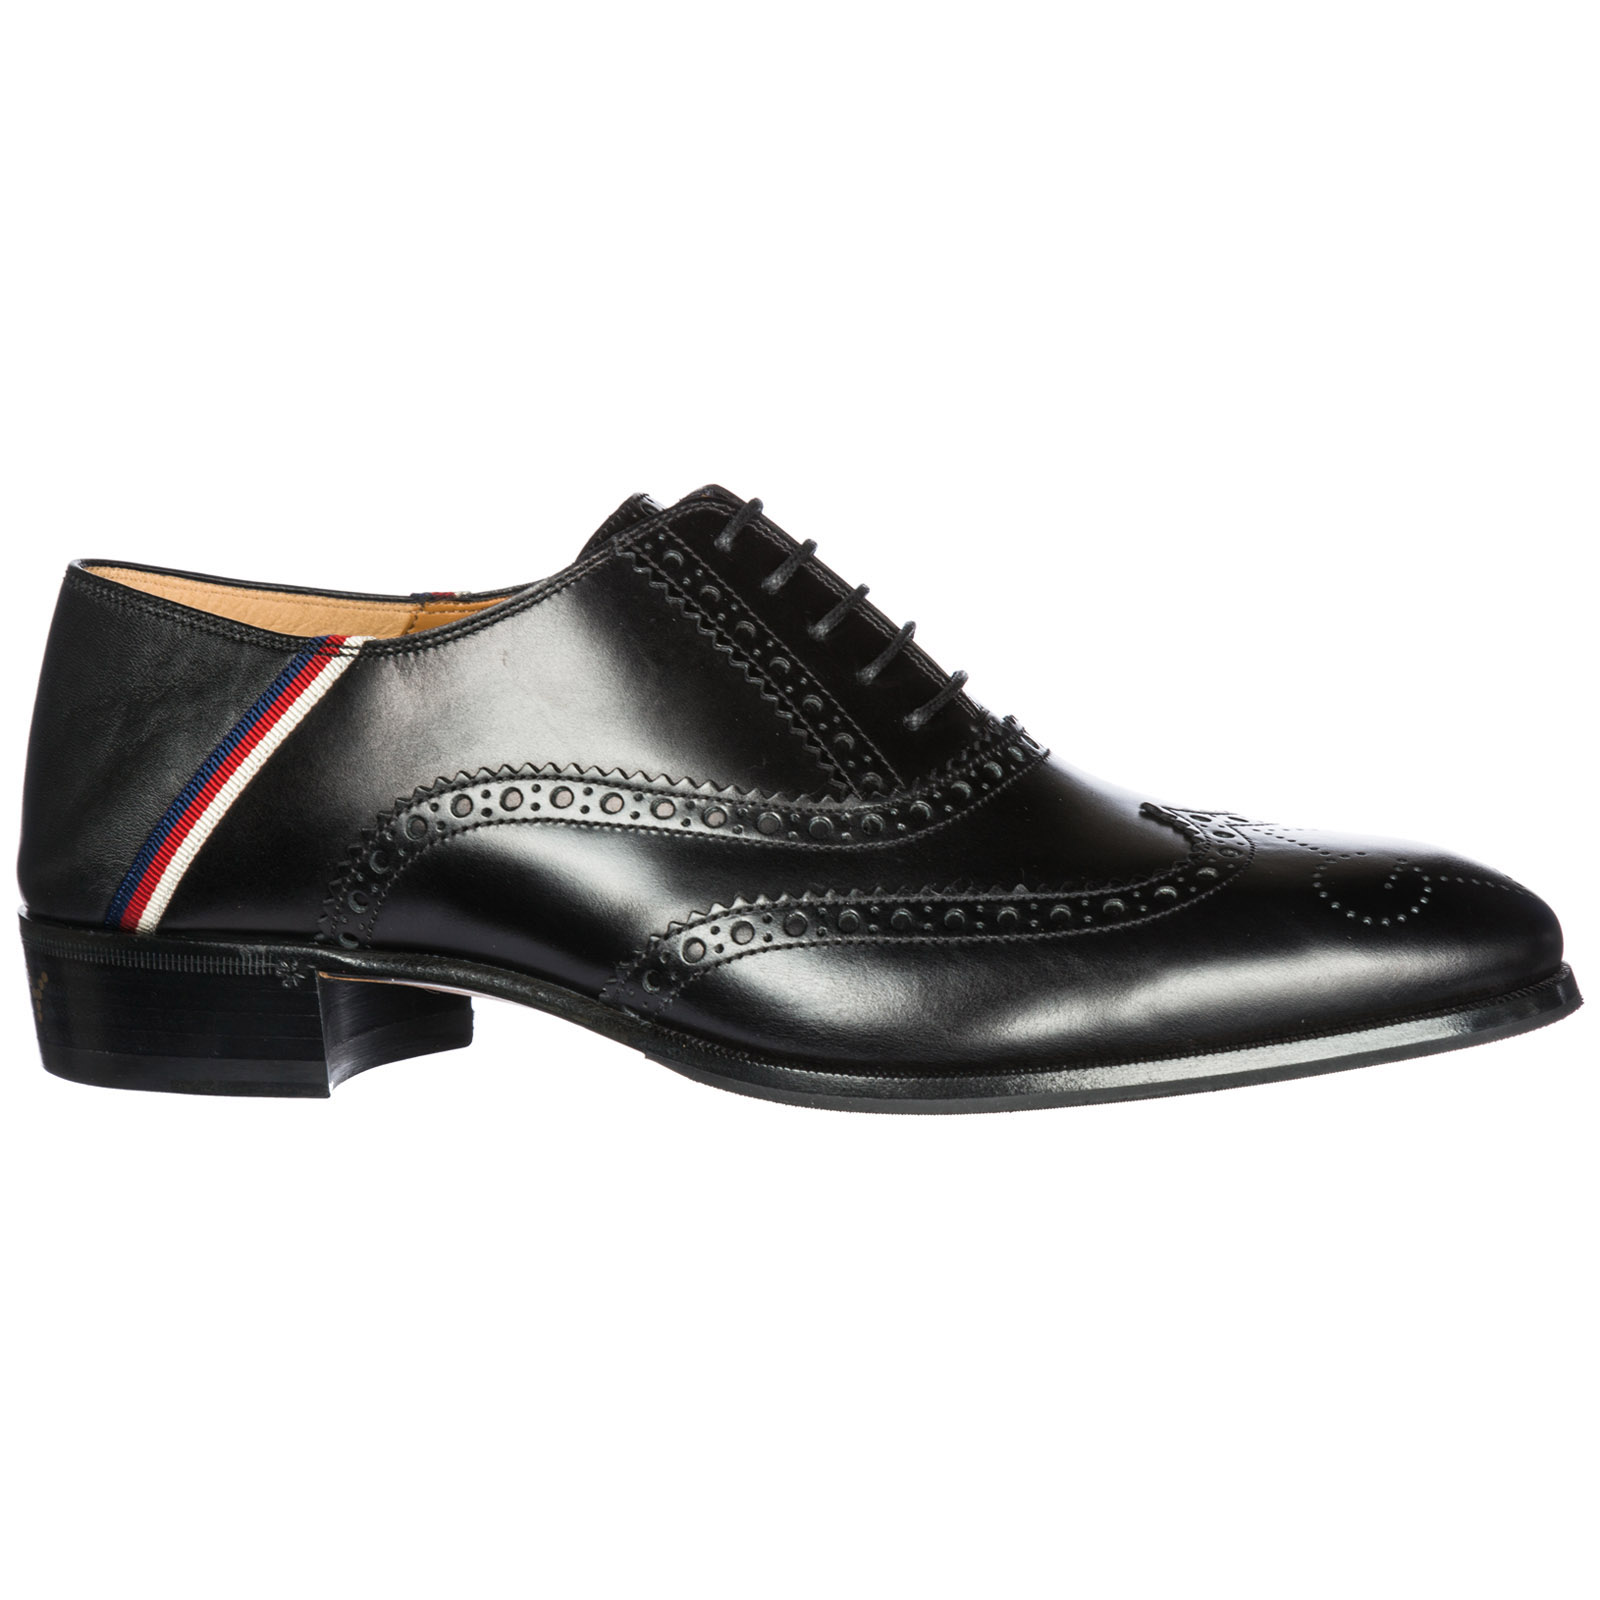 Men's classic leather lace up laced formal shoes brogue sylvie web